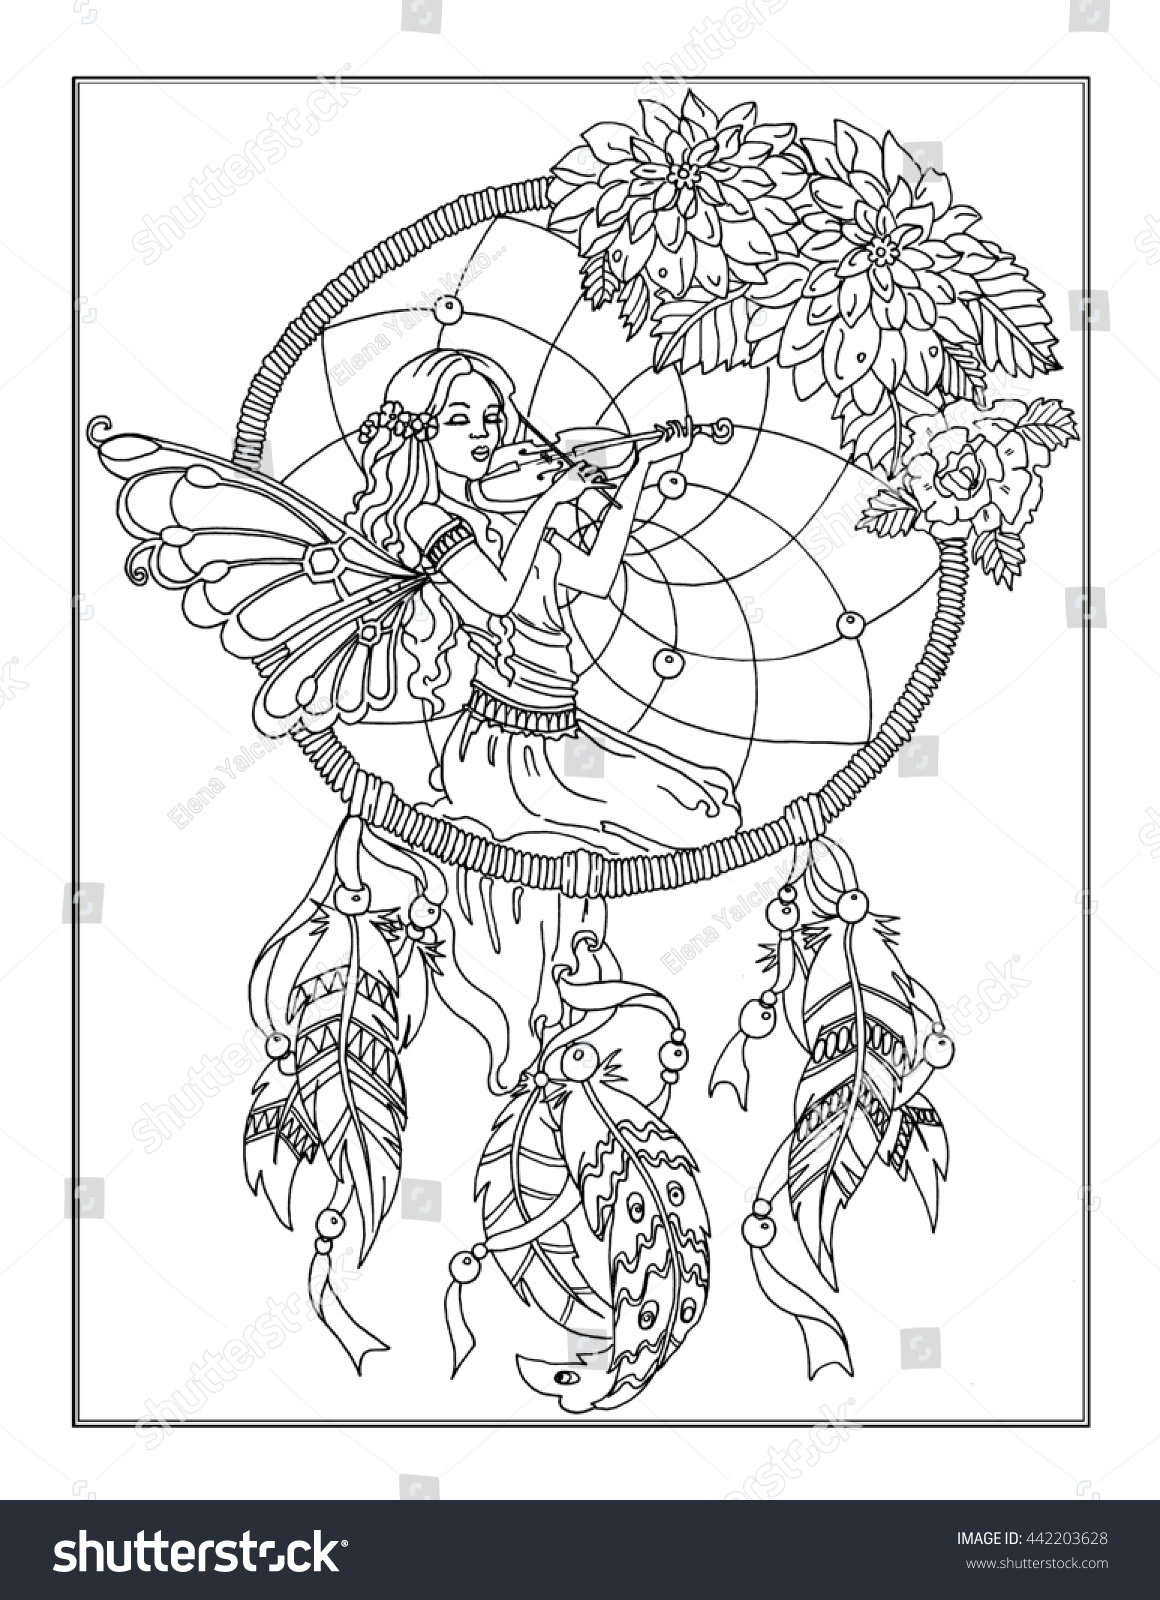 Enchanted Forest Coloring Book Inspirational Coloring Pages